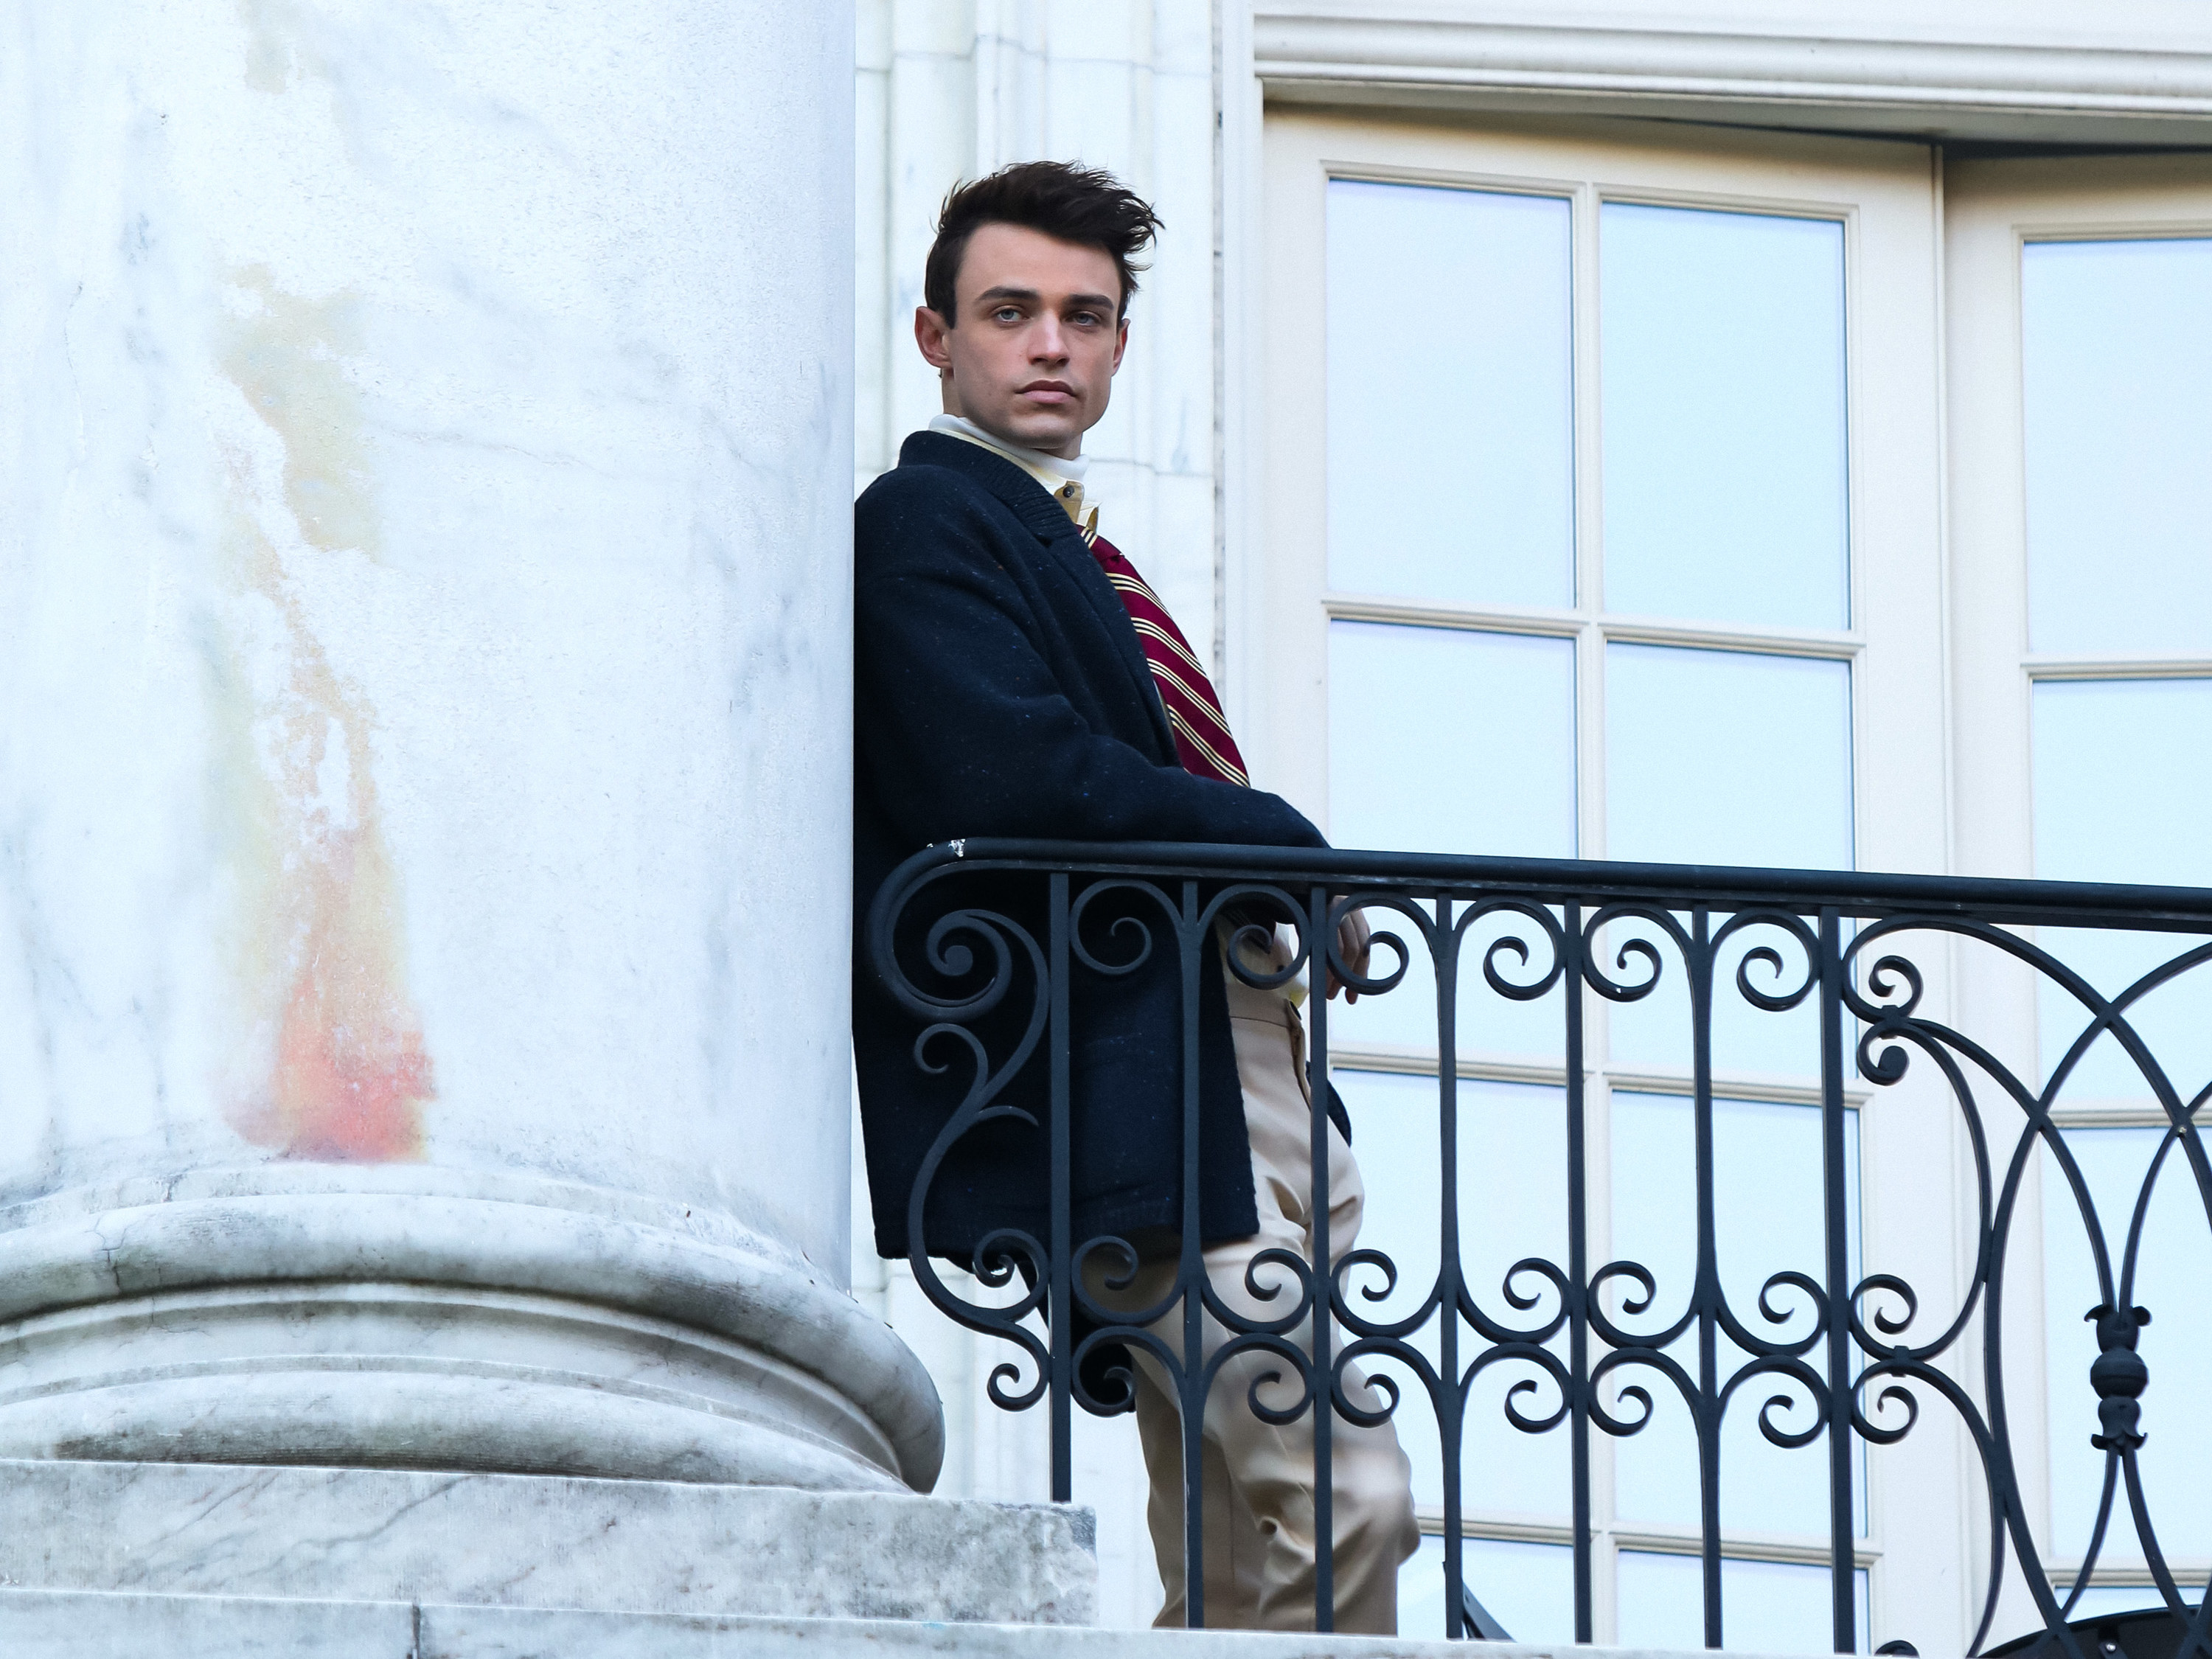 Thomas Doherty is seen at the film set of the 'Gossip Girl' TV Series on November 24, 2020 in New York City